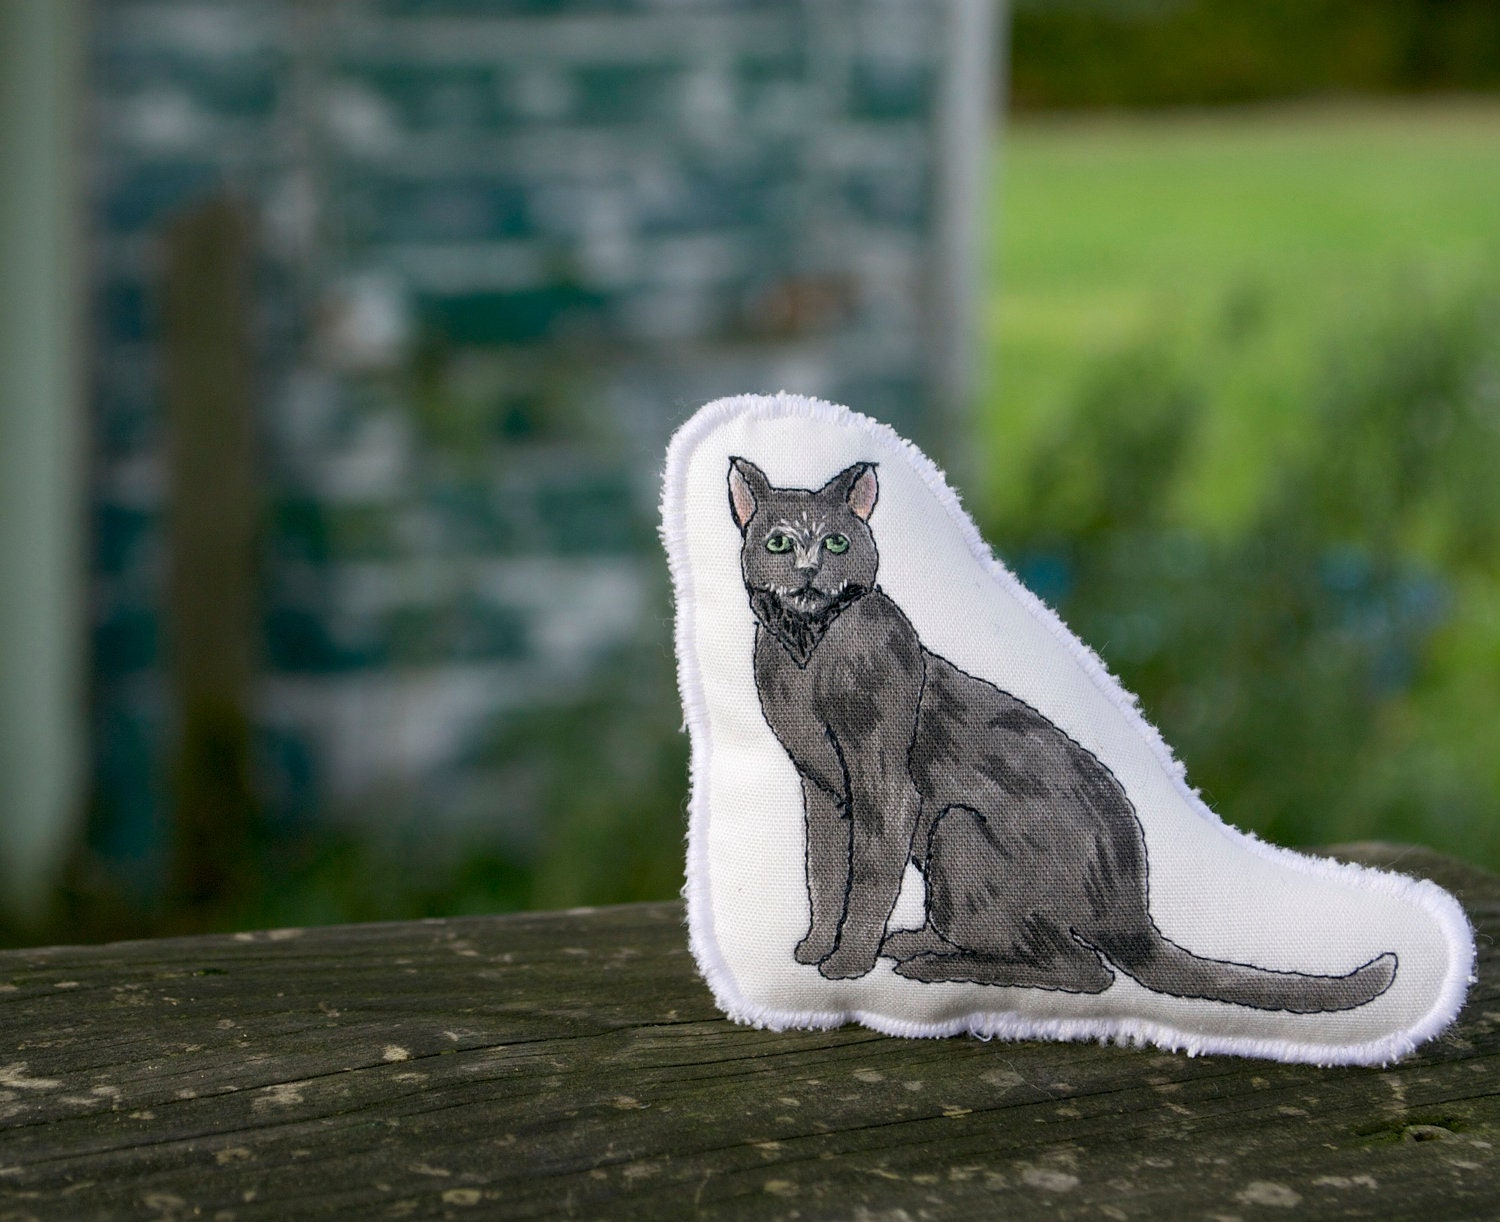 Barn Cat Toy. Hand Drawn Organic Cotton Farm Pillow Toy by Aly Parrott on Etsy. - alyparrott